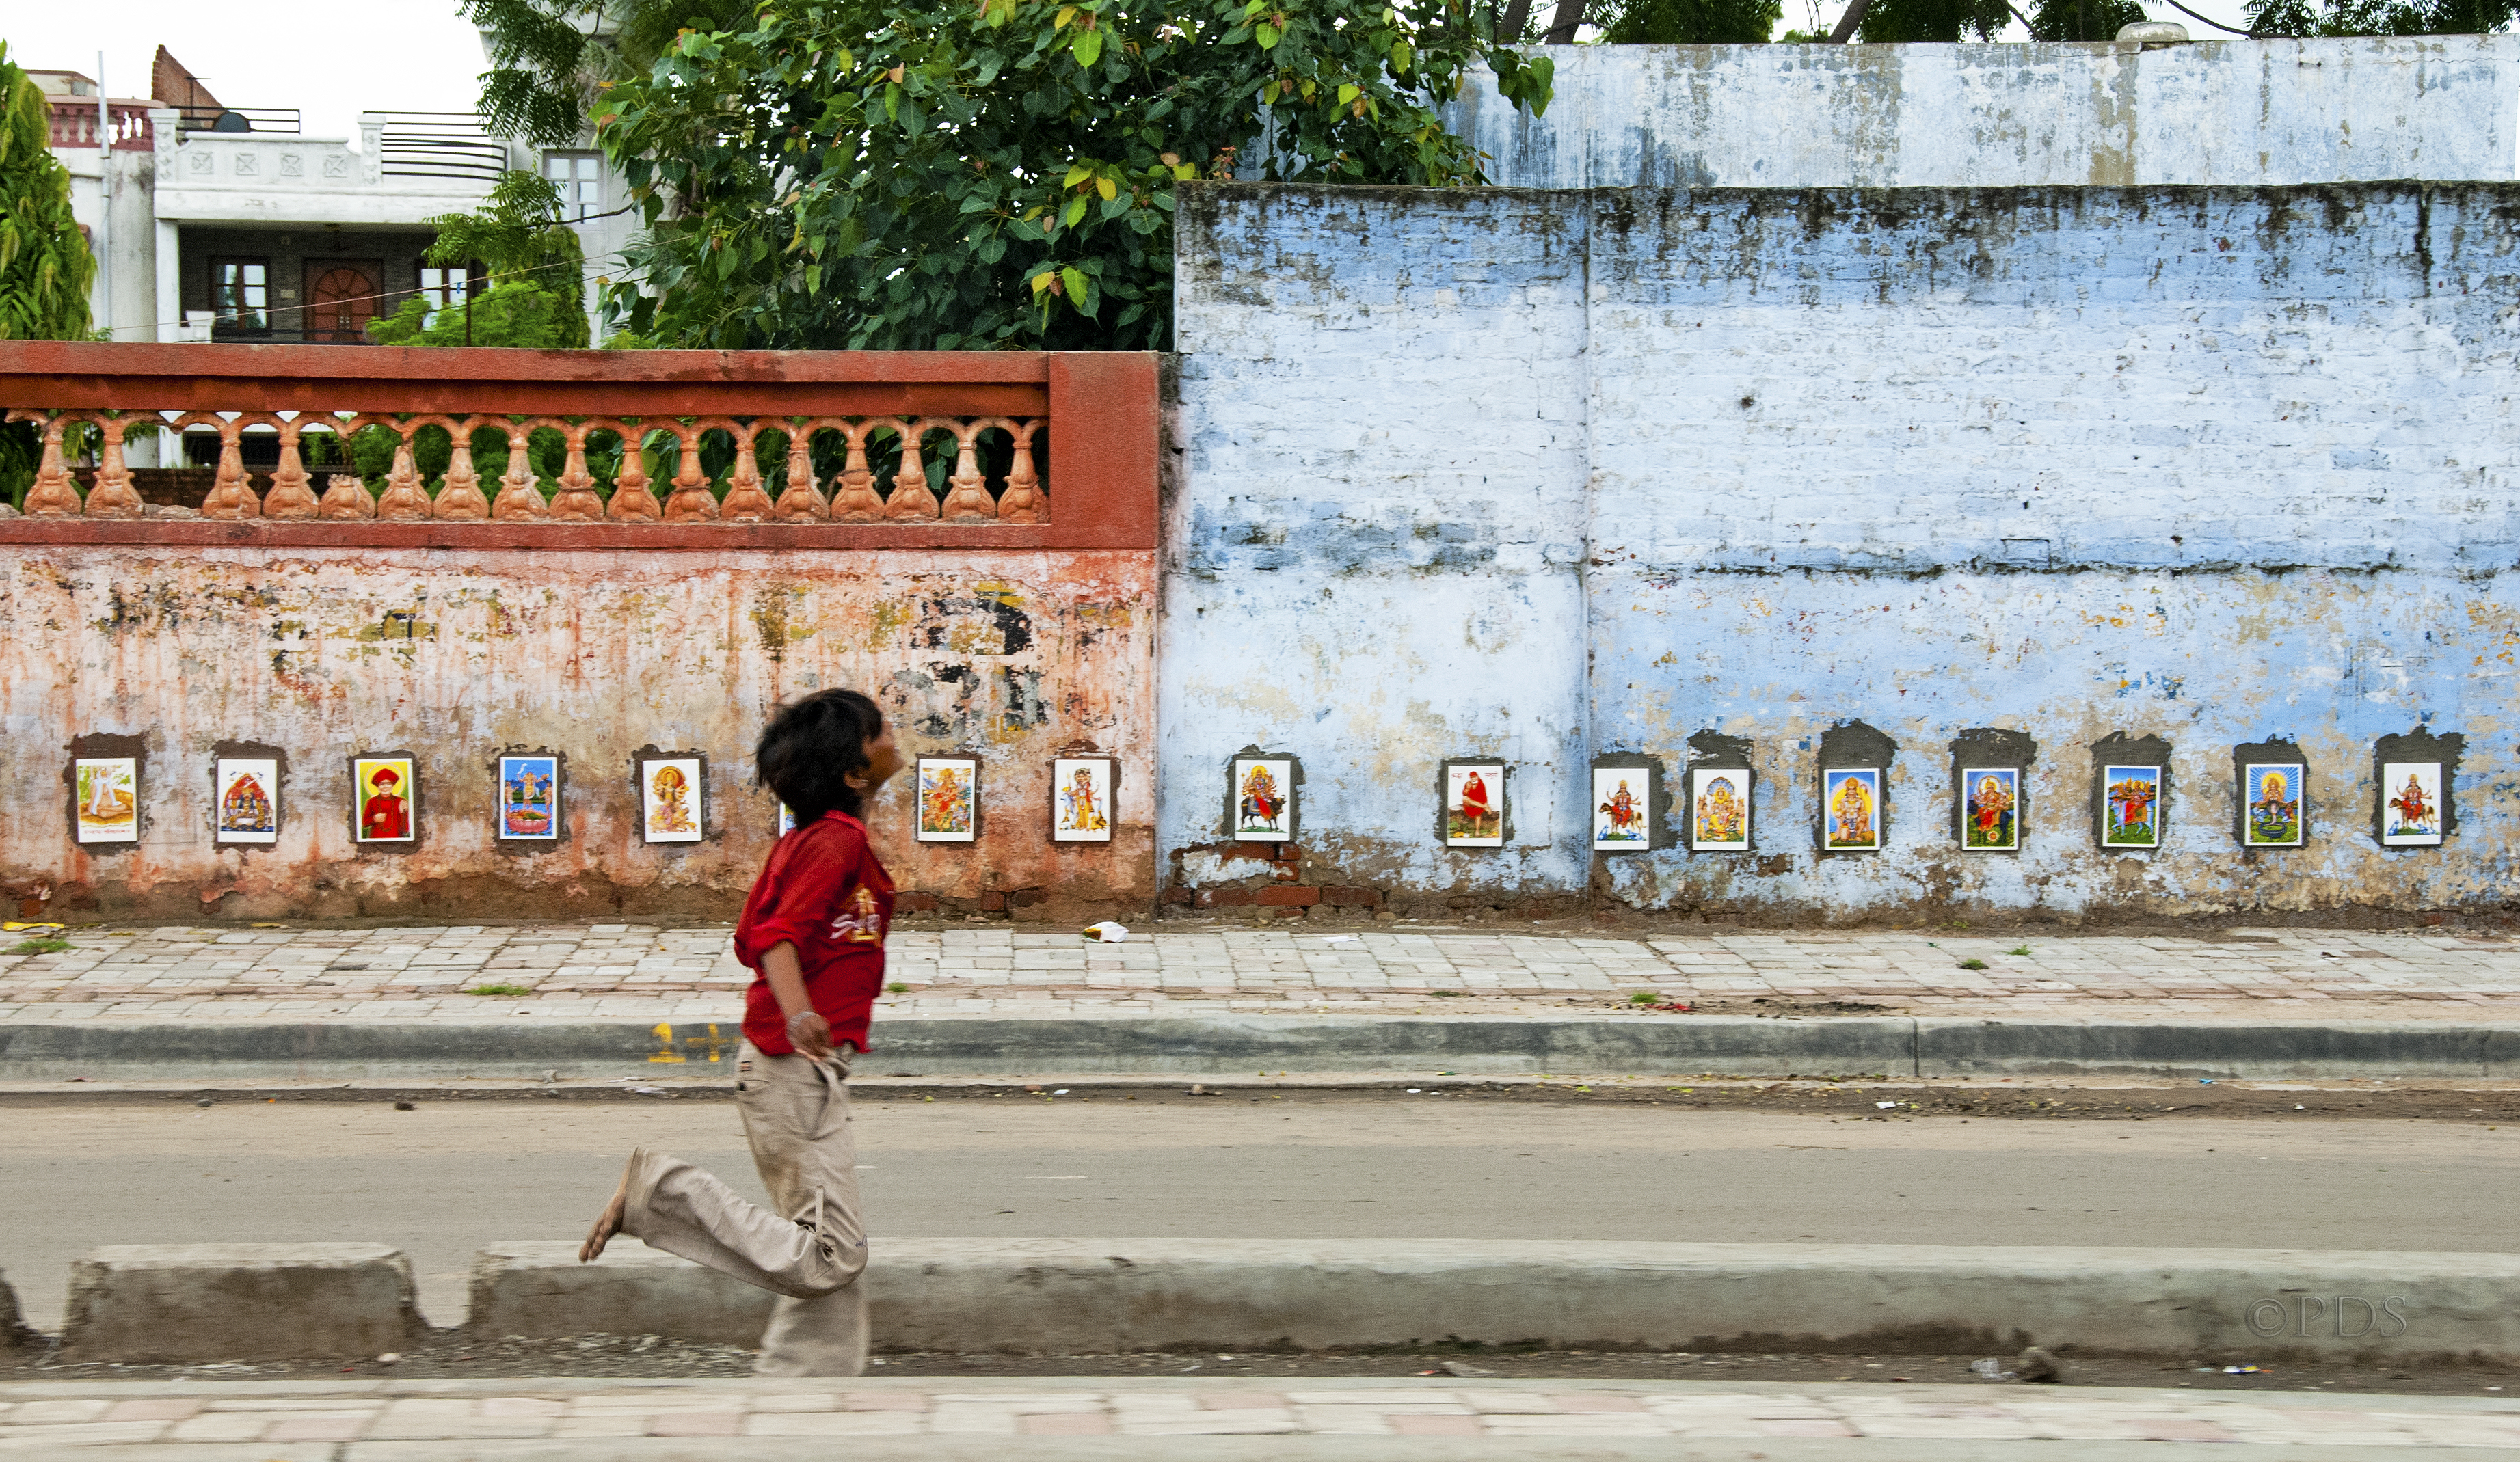 <p>A kid runs through Ahmedabad, India. Flickr/Freedom House</p>